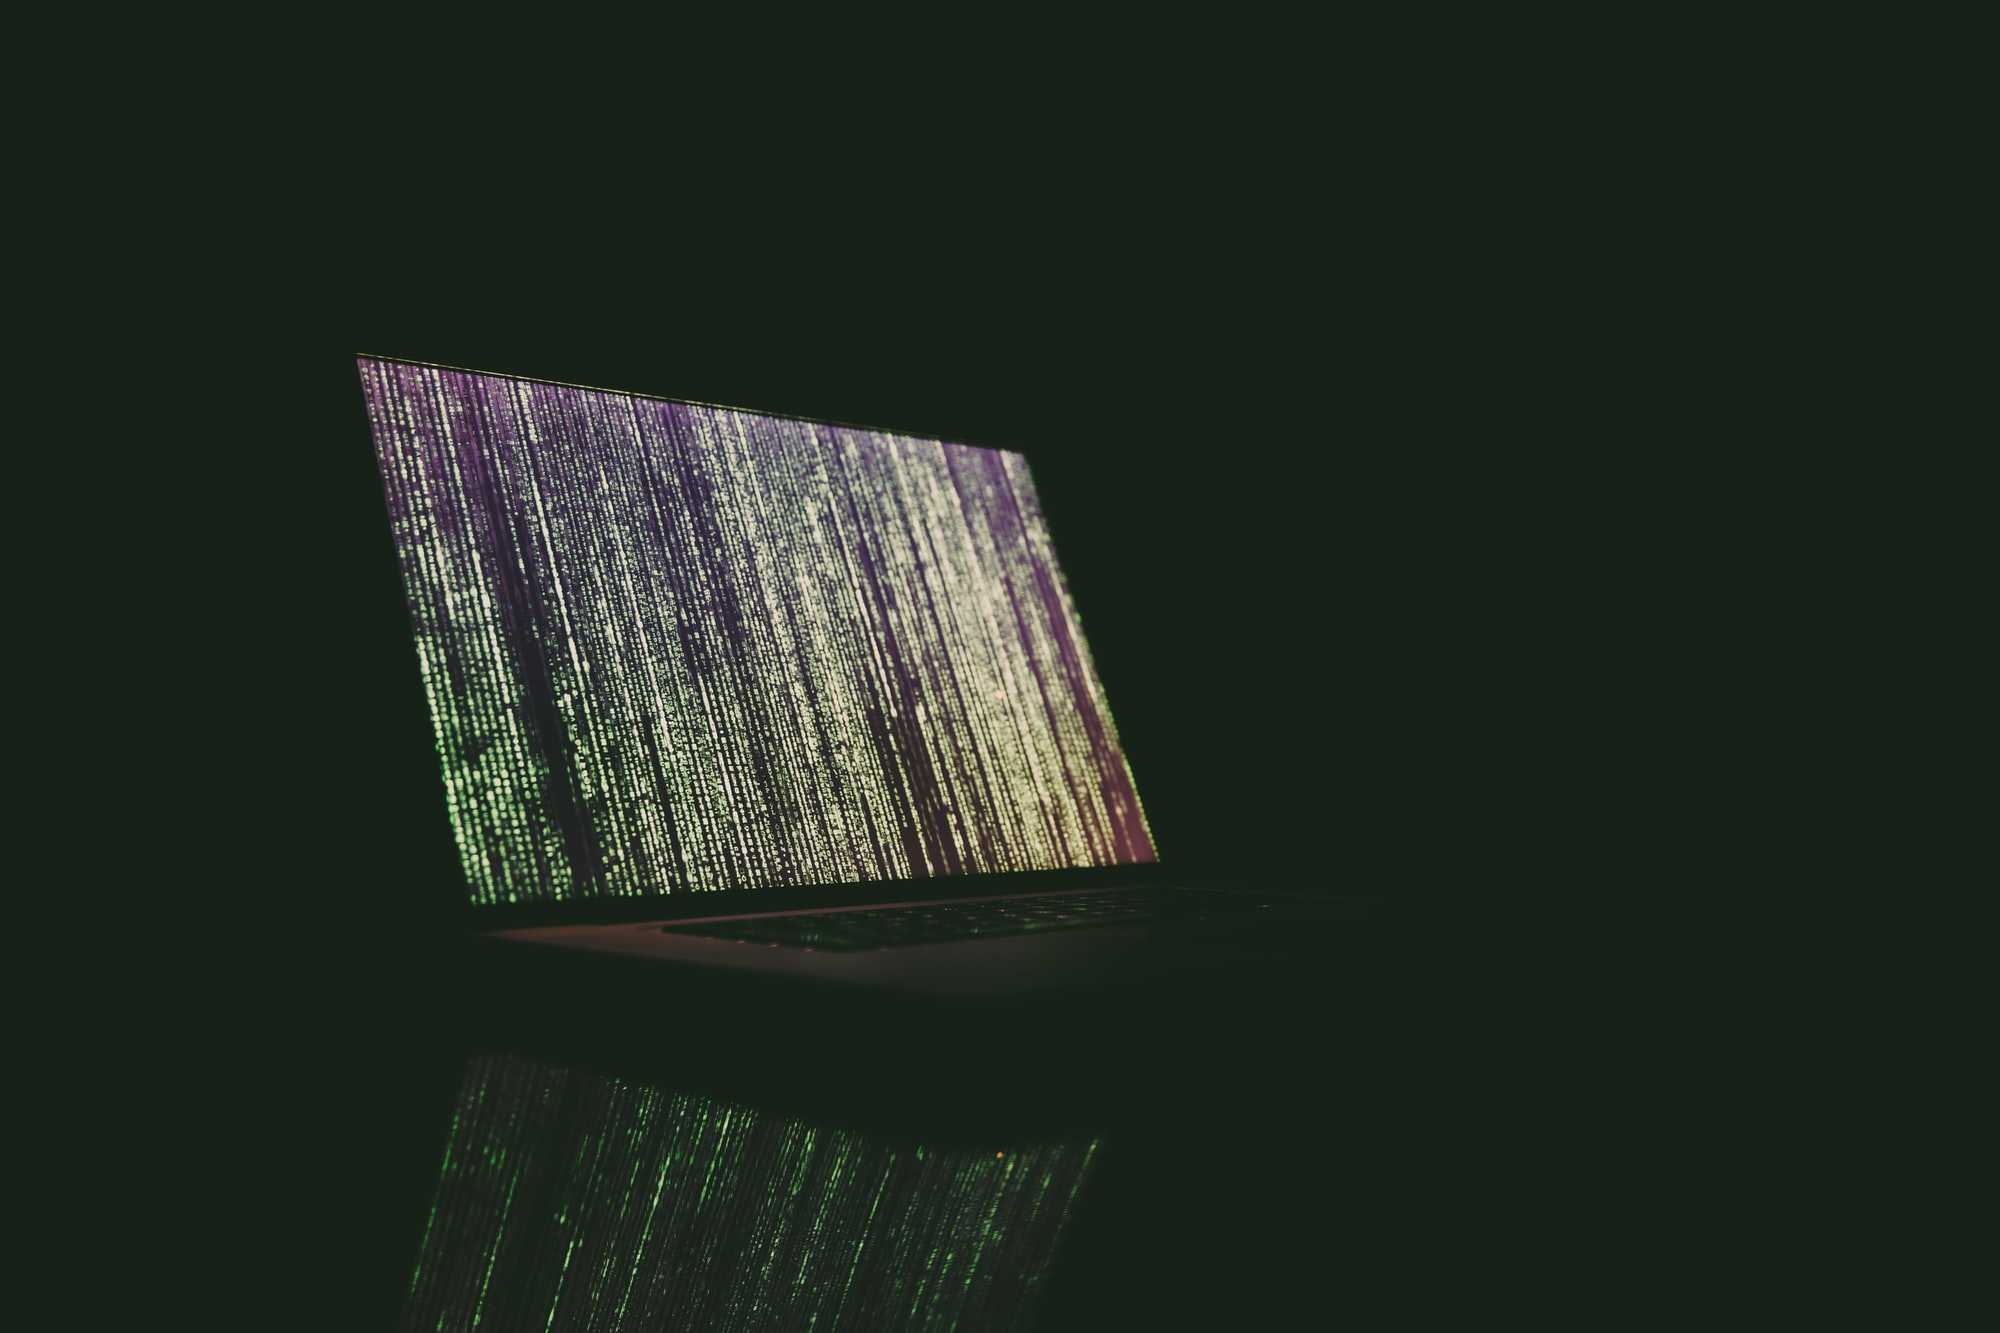 Smartly Detect and Crack Password Hashes using JohnTheRipper